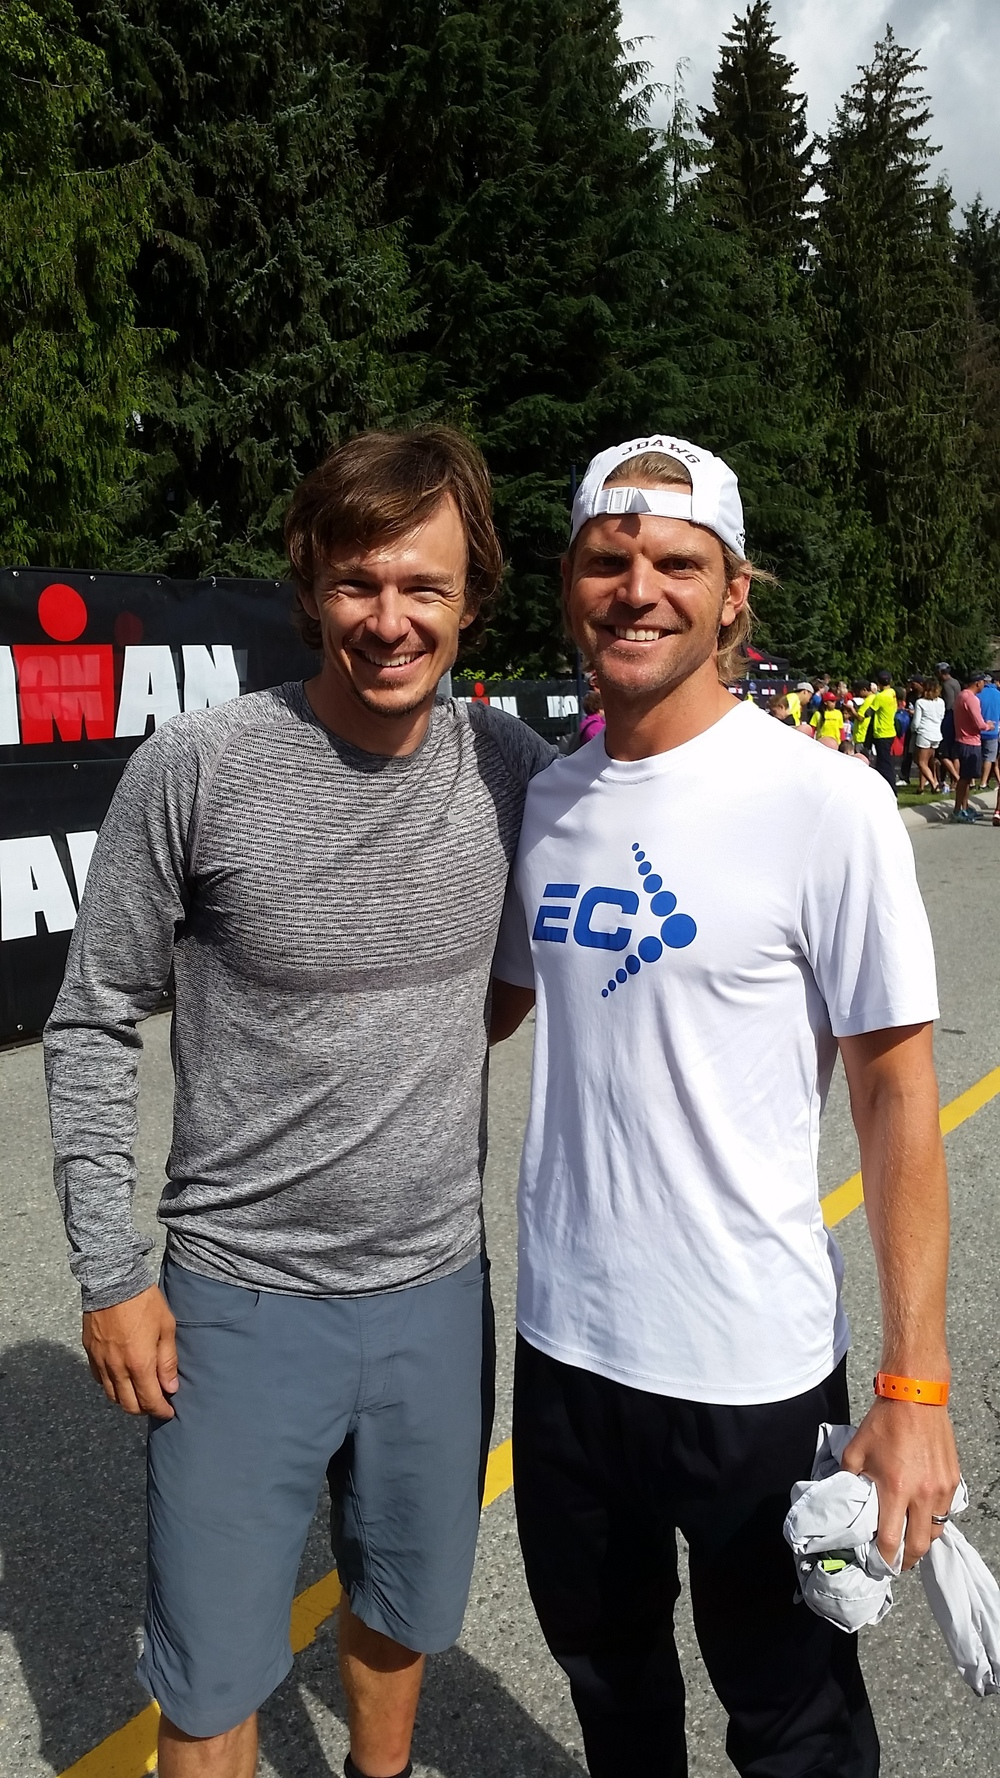 Simon Whitfield, two-time Oly Medalist including gold in Sydney, joined the Ironkids run on Saturday. It was a pleasure to meet one of the sport's greatest athletes.